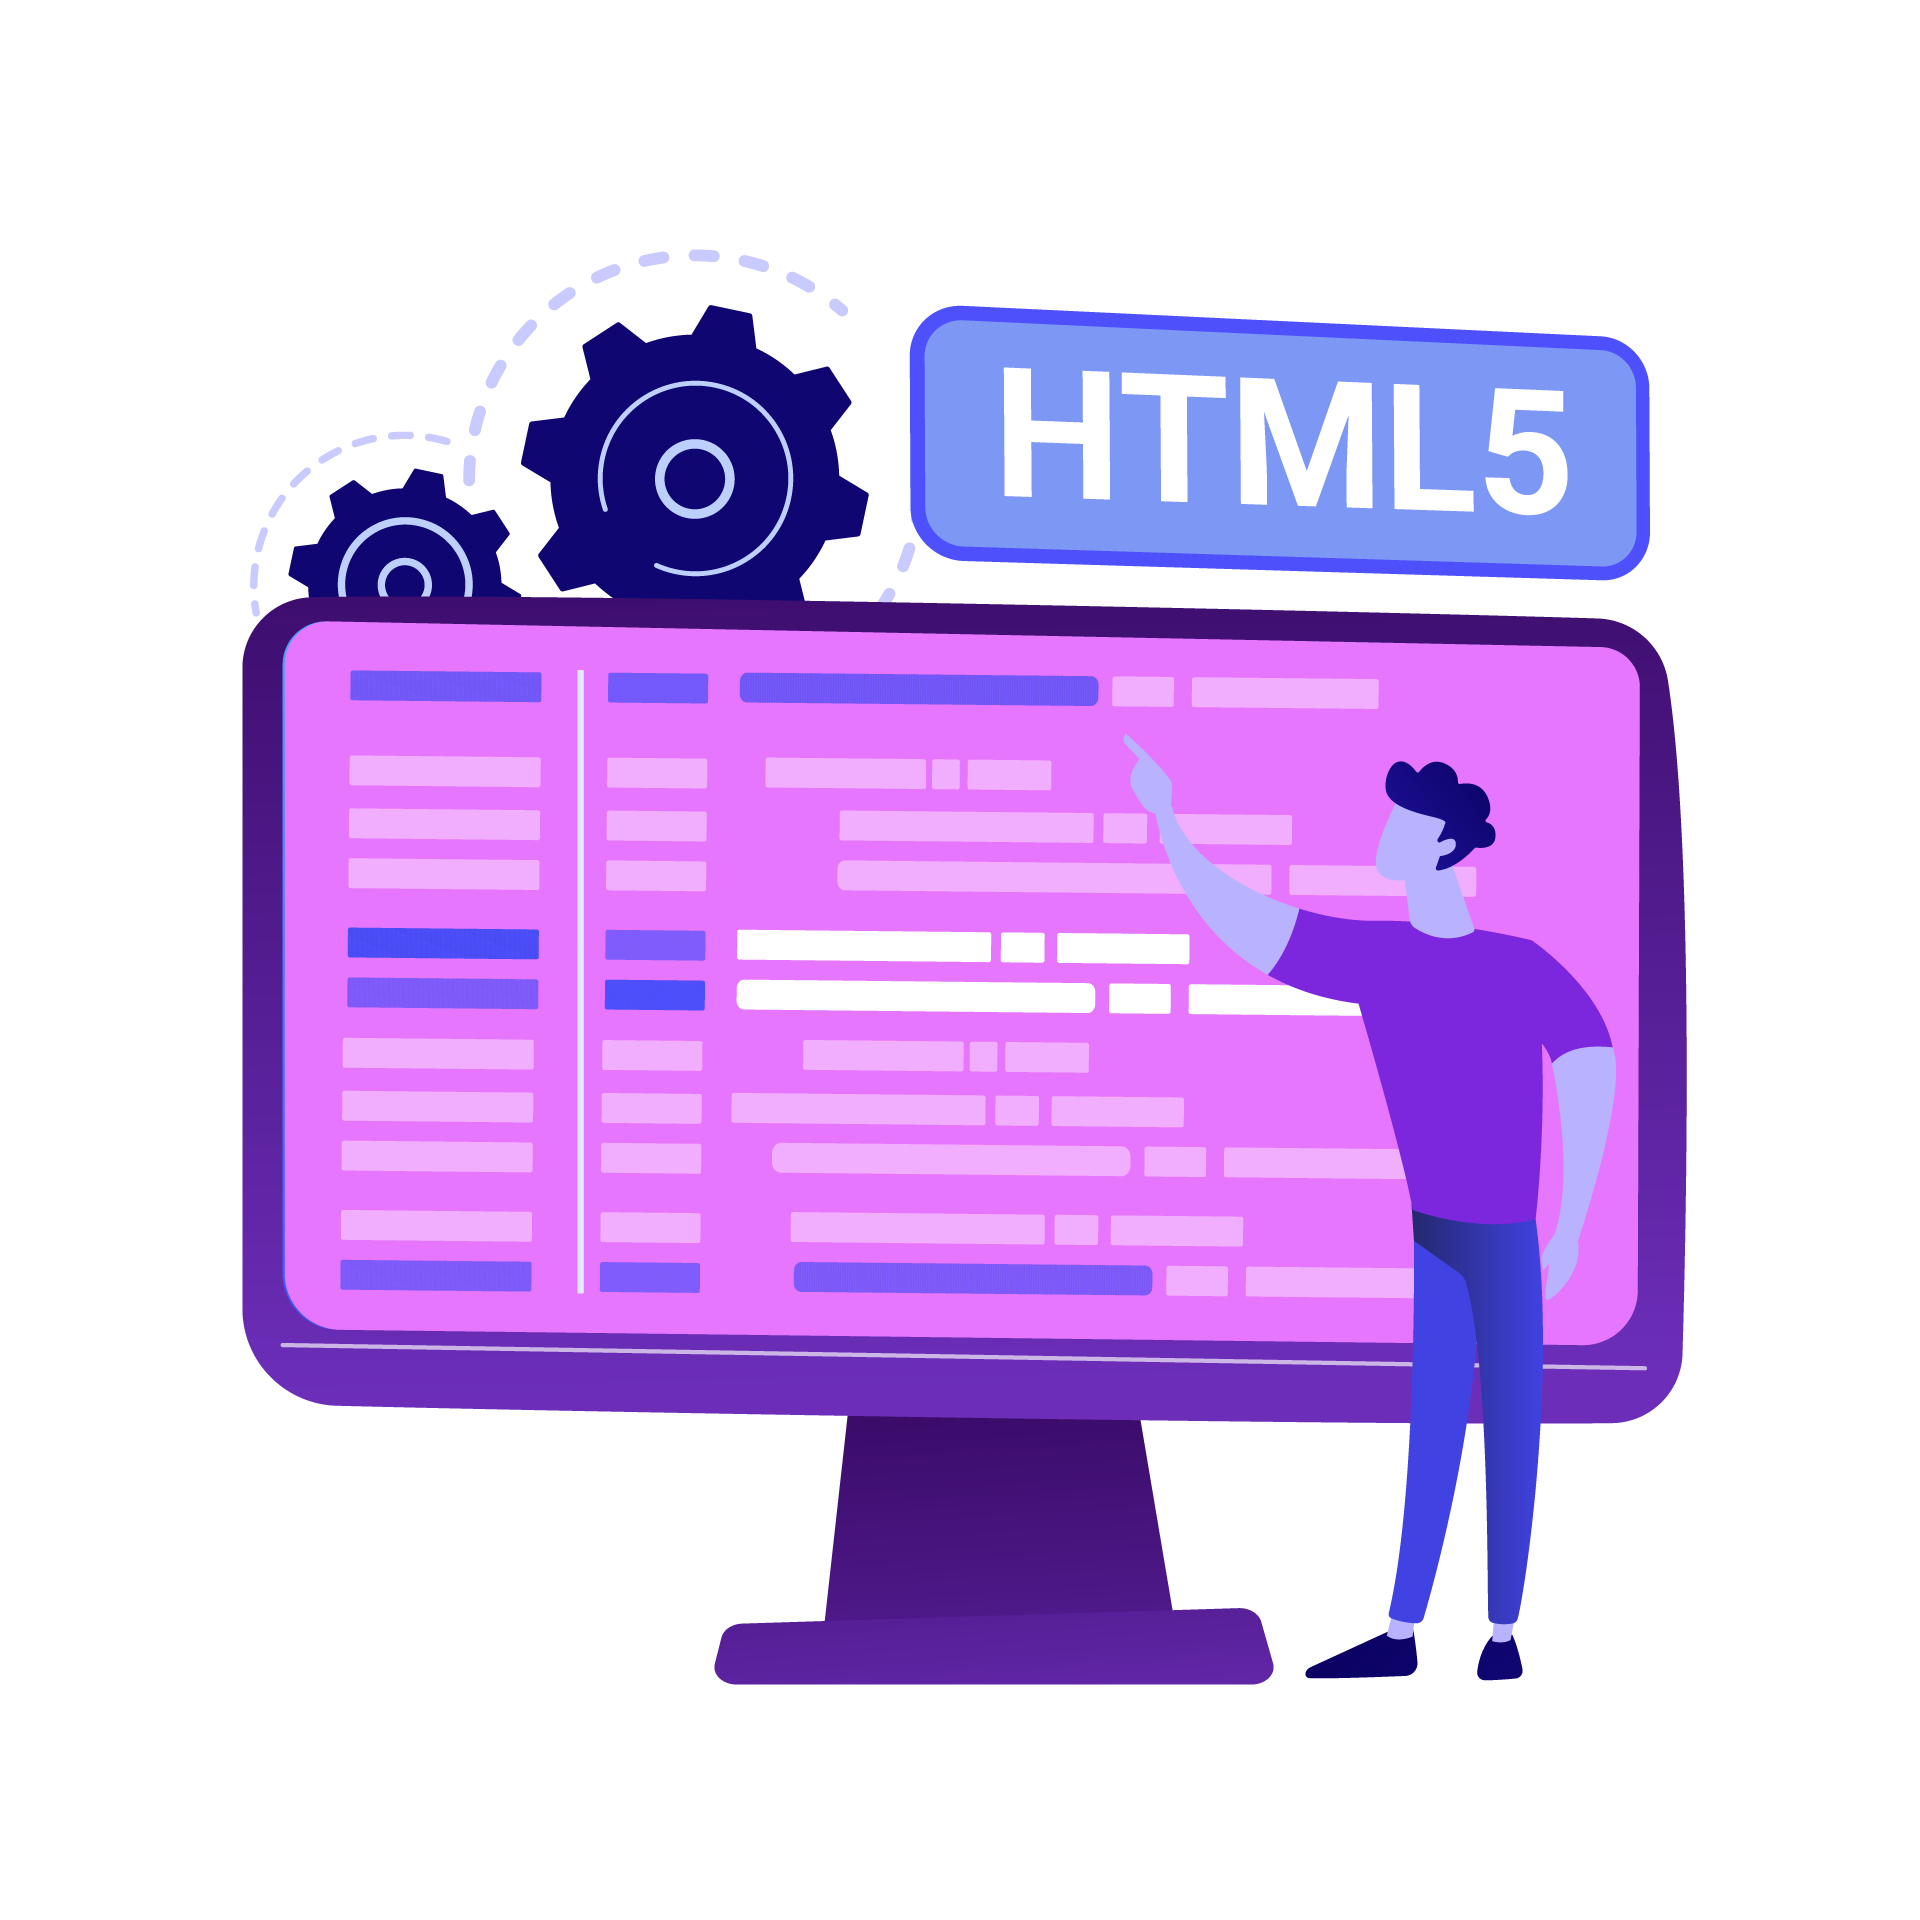 Illustration HTML5